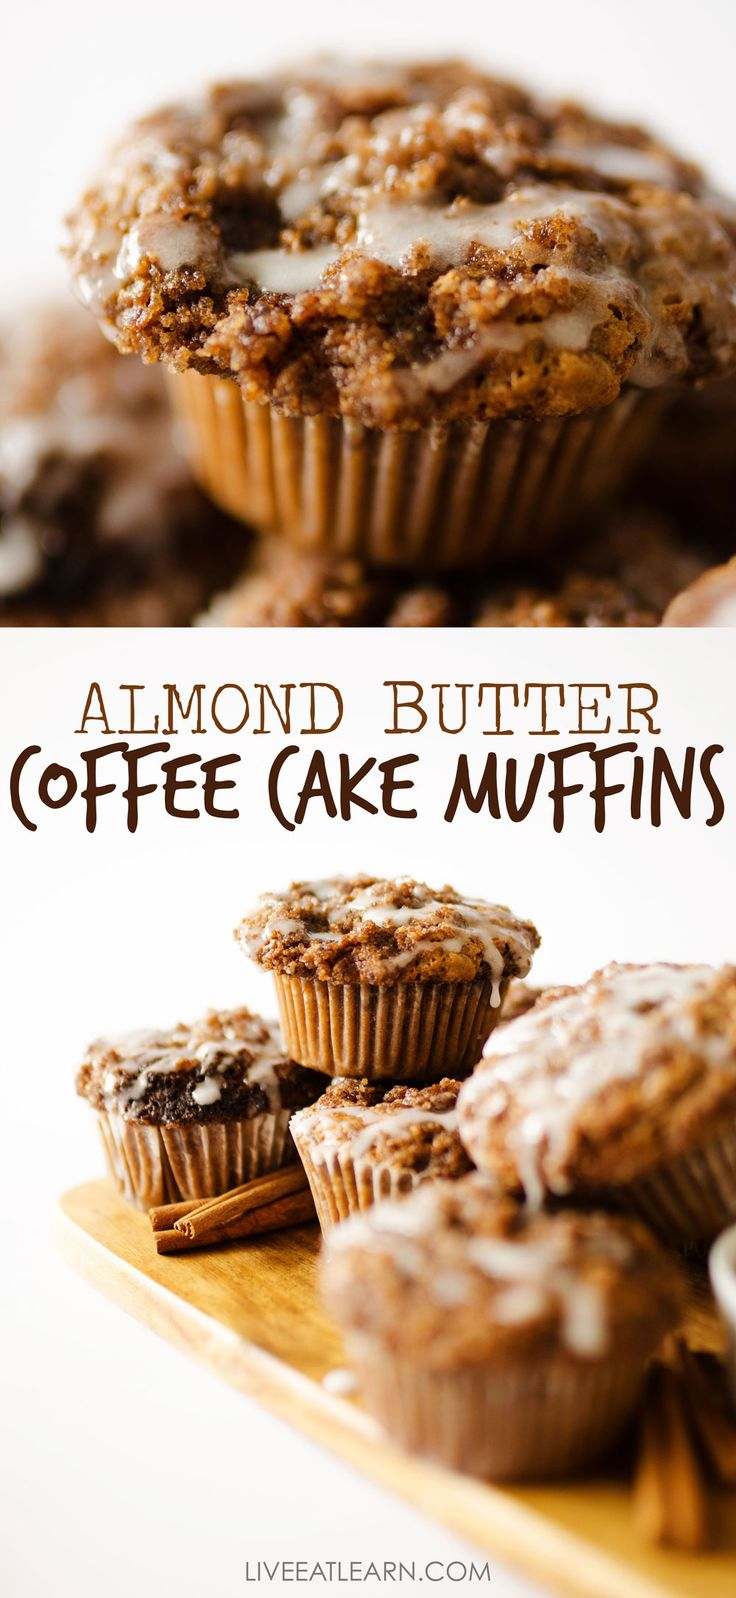 Almond Butter Coffee Cake Muffins – eat: vegetarian recipes